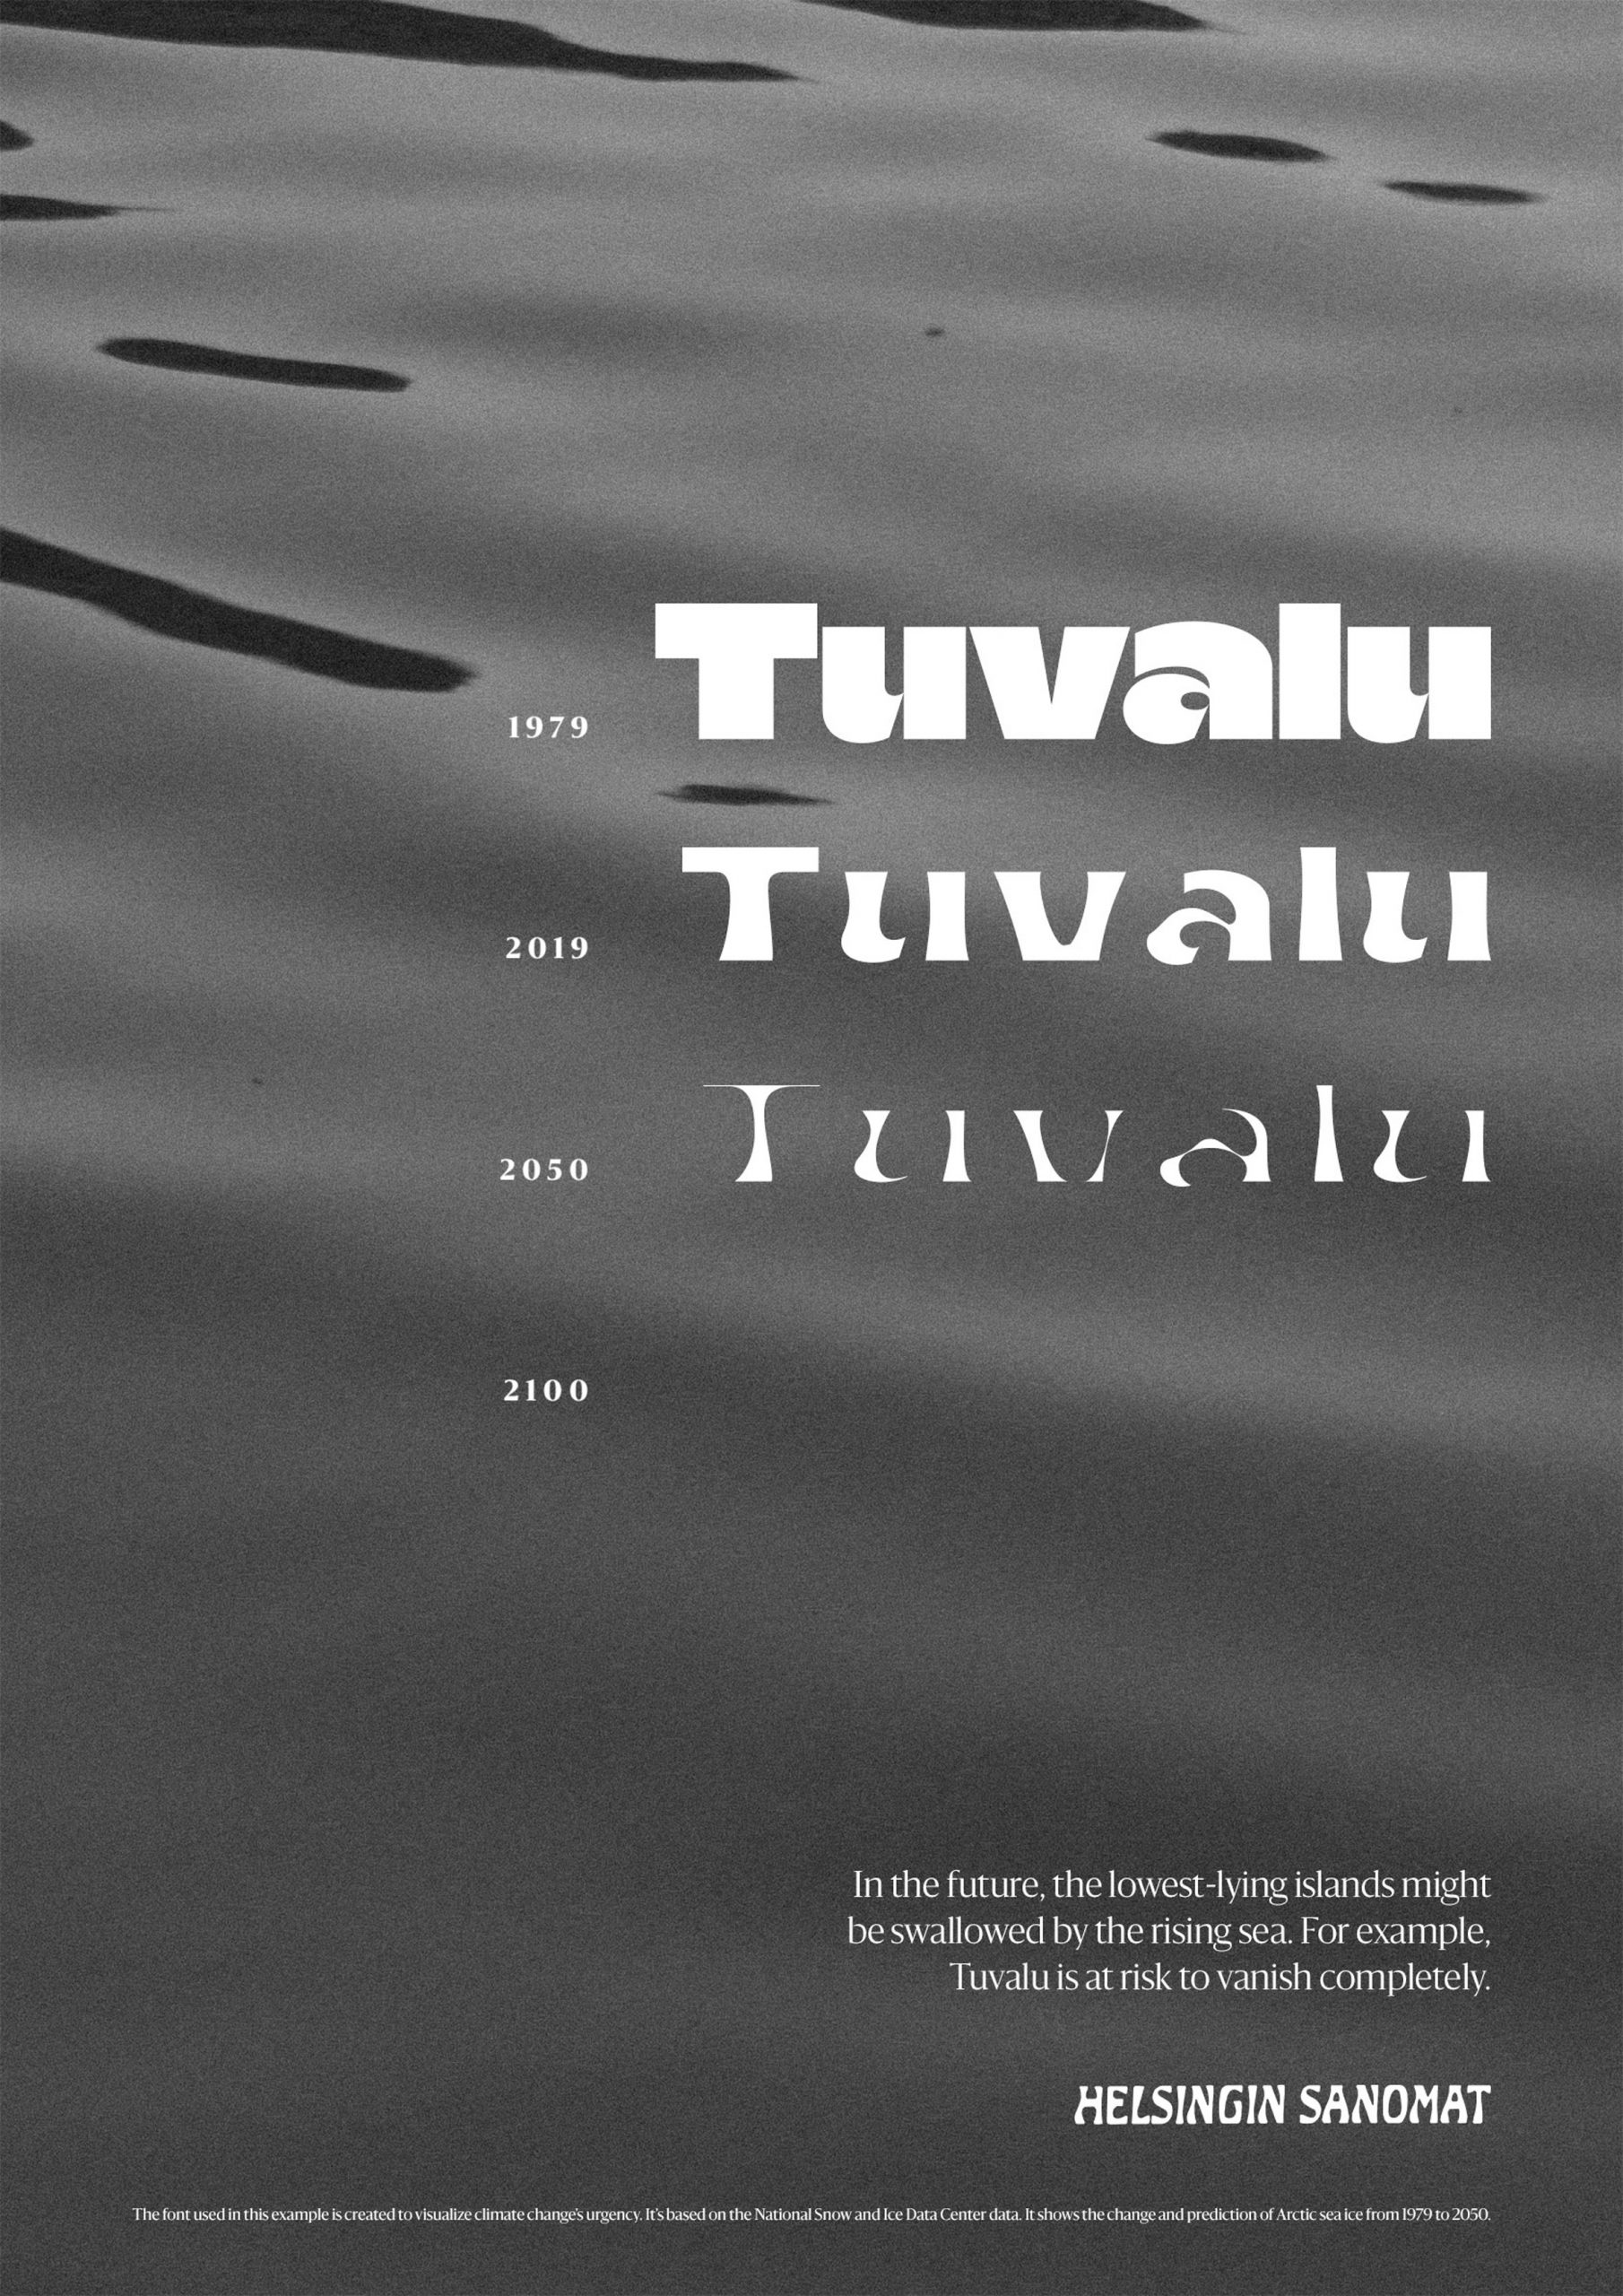 Poster illustrating rising sea levels using a variable font by Helsingin Sanomat